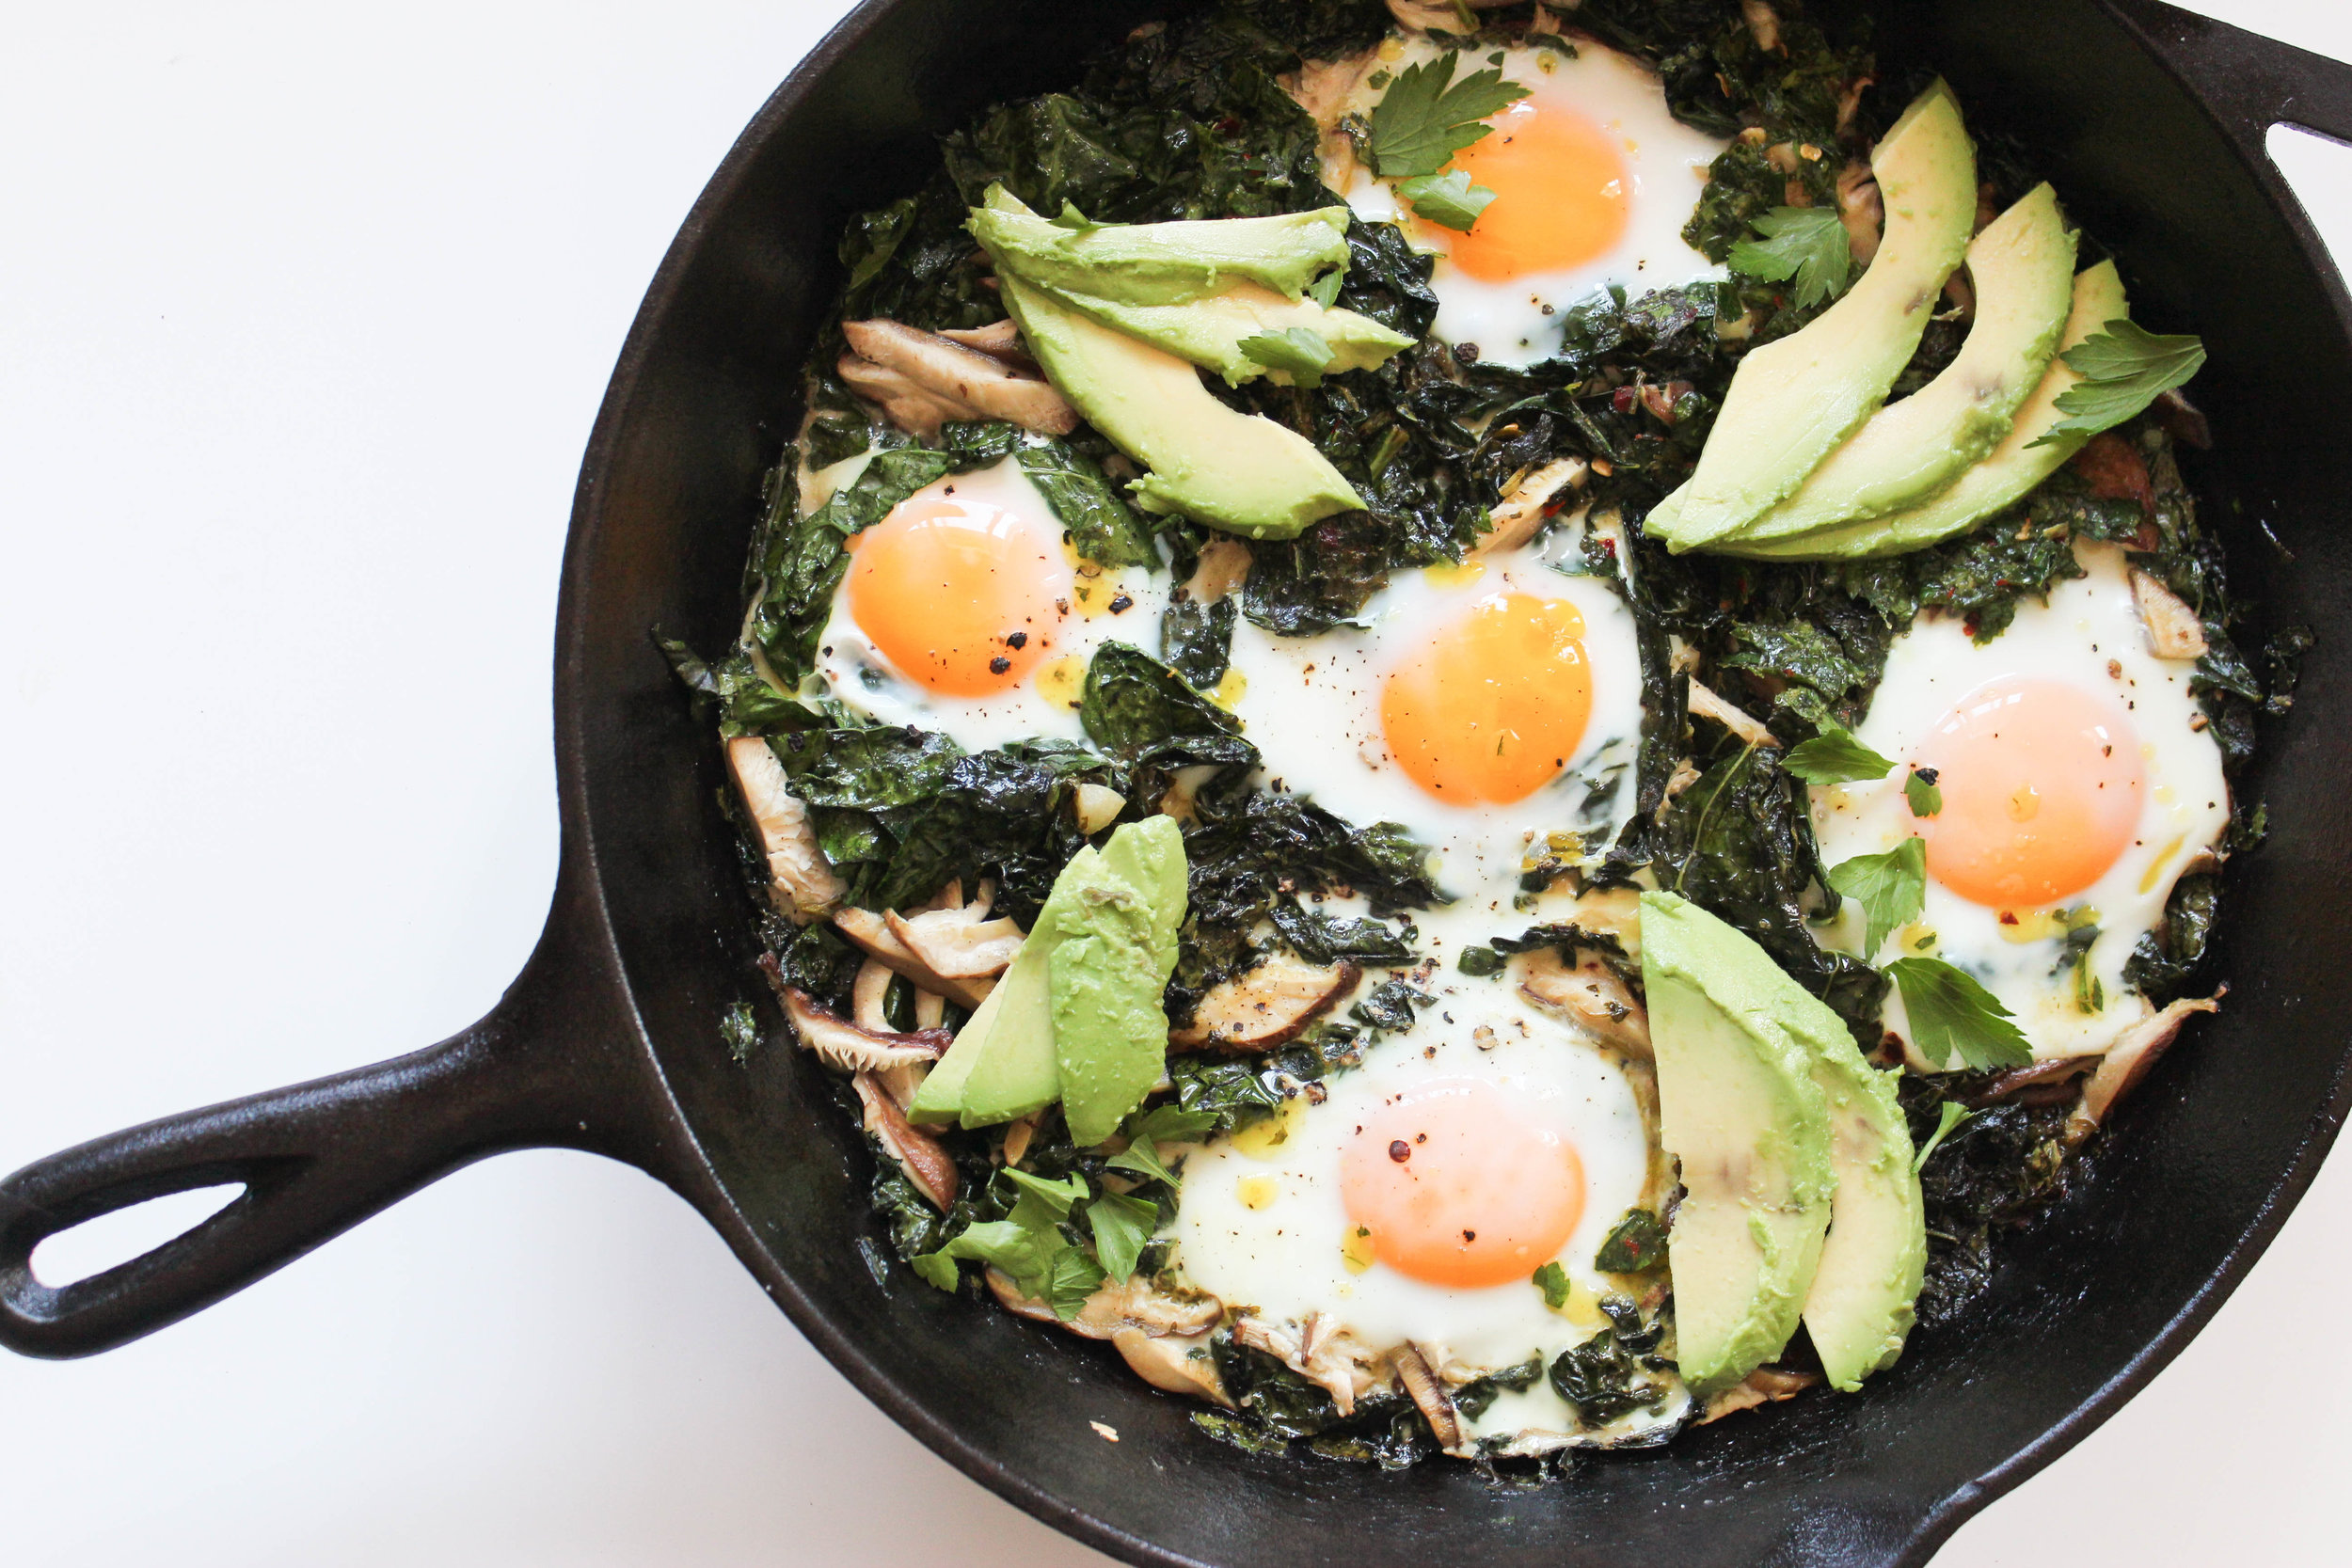 For Mother's Day Brunch or an easy weeknight meal, baked eggs are an incredibly versatile dish.